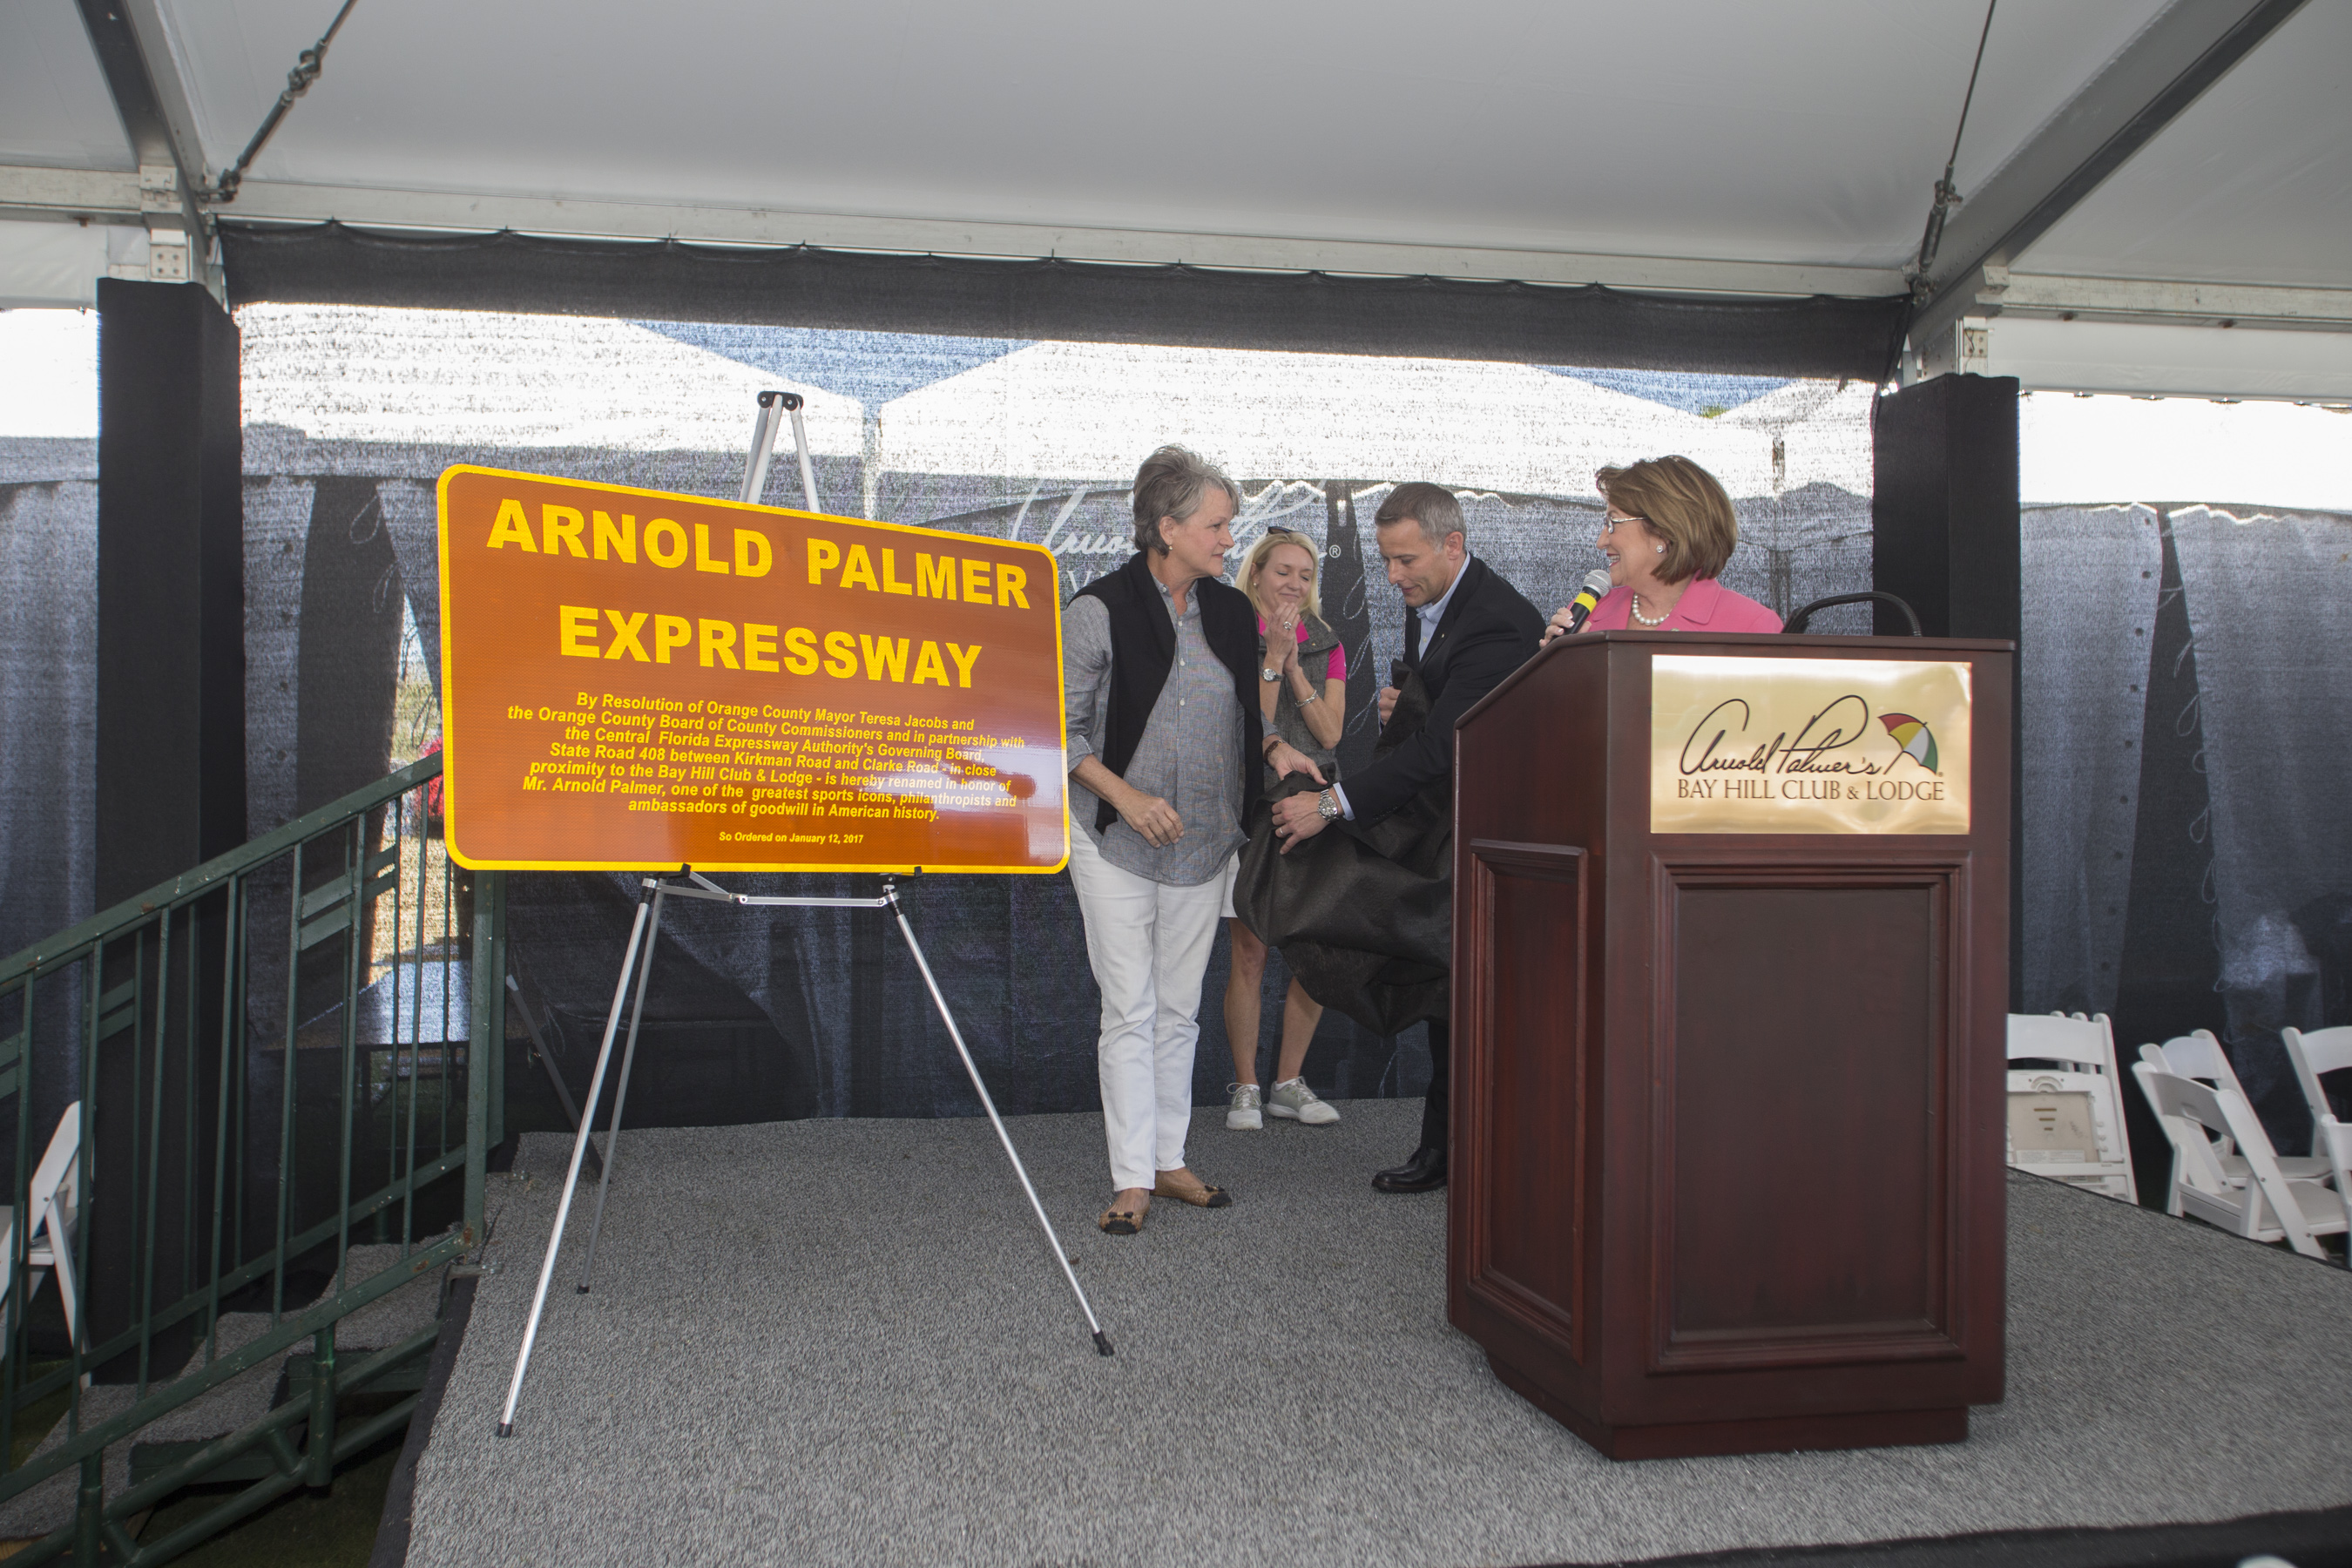 mayor jacobs honors the legacy of arnold palmer and unveils